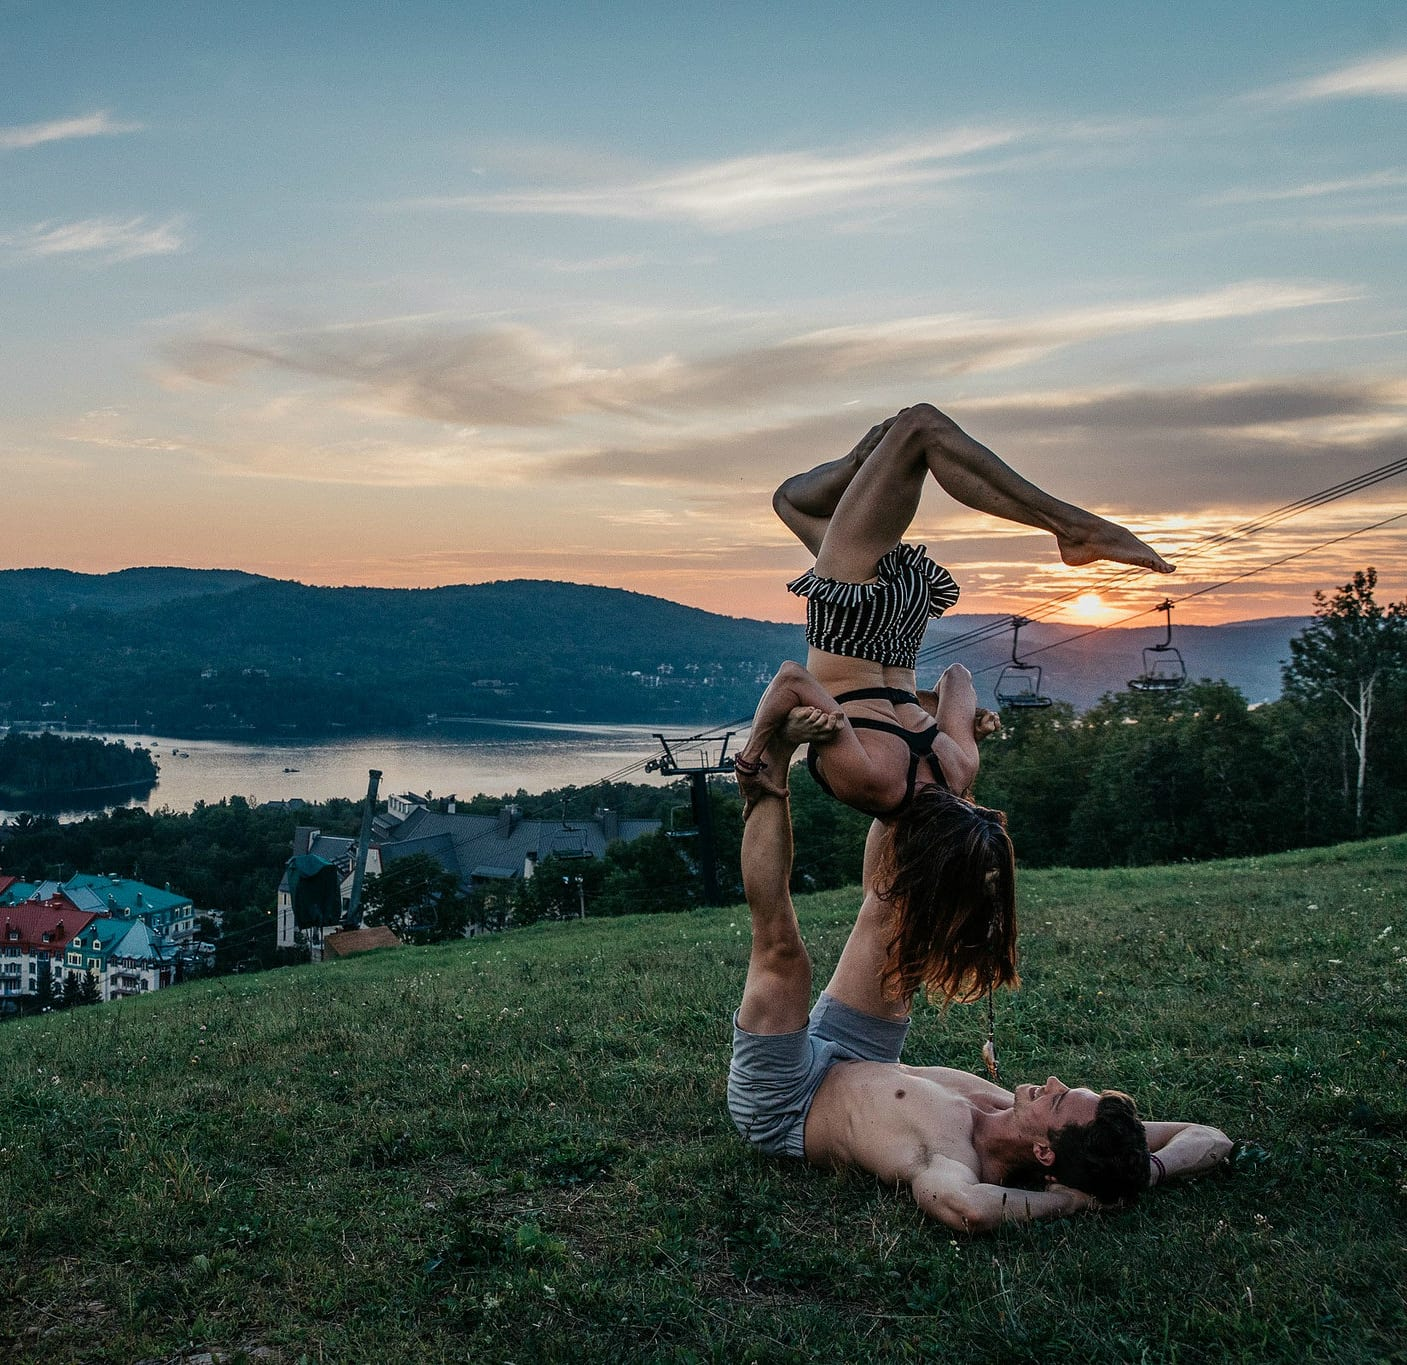 acro yoga on a mountain at sunset with village below